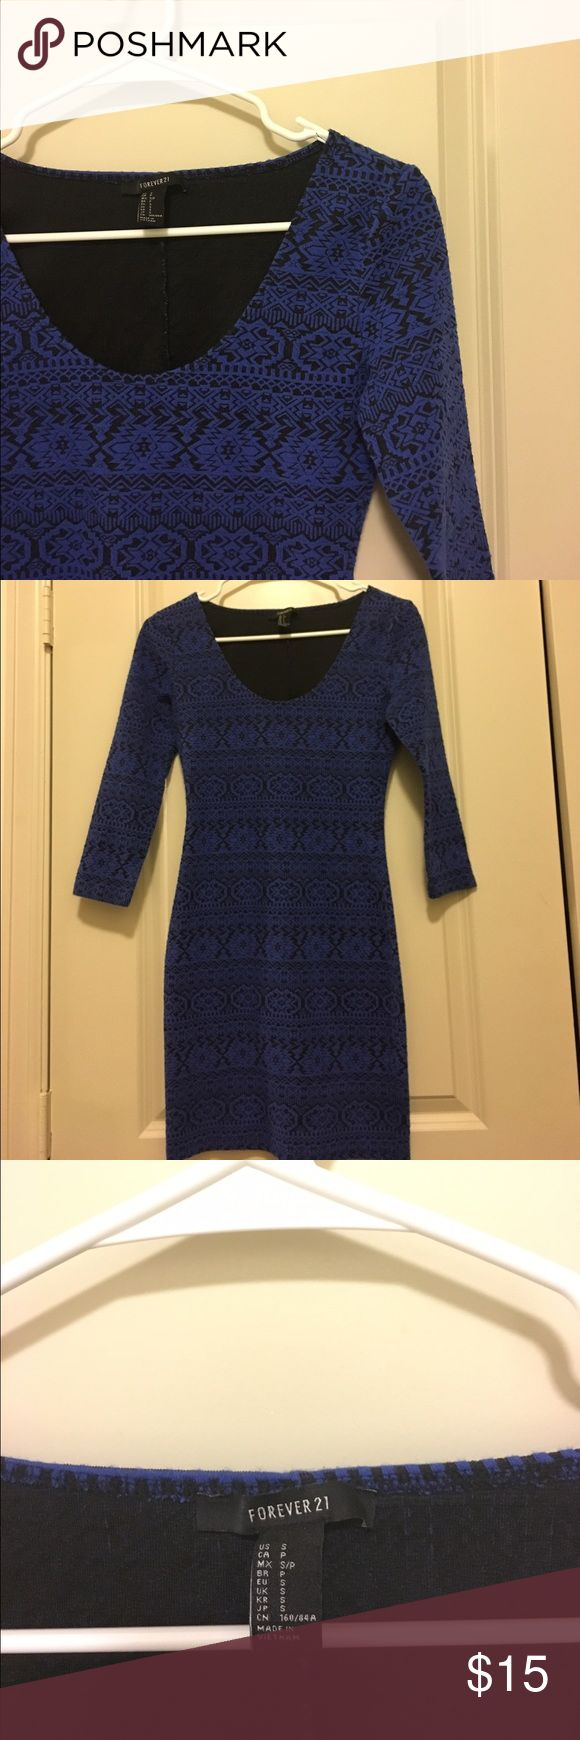 🍍Forever 21 Cobalt Blue Mini Bodycon Dress🍍 Cobalt Blue. Size Small. Bodycon style dress. Aztec Design. Very comfy. Worn twice for date night as well as a fraternity party. Starting at top of dress to the bottom is 31 3/4 inches long. Armpit to armpit is 14 1/2 inches wide. Have any questions? Ask away! 😊 Ships same day and next day! No trades 🚫 Forever 21 Dresses Mini